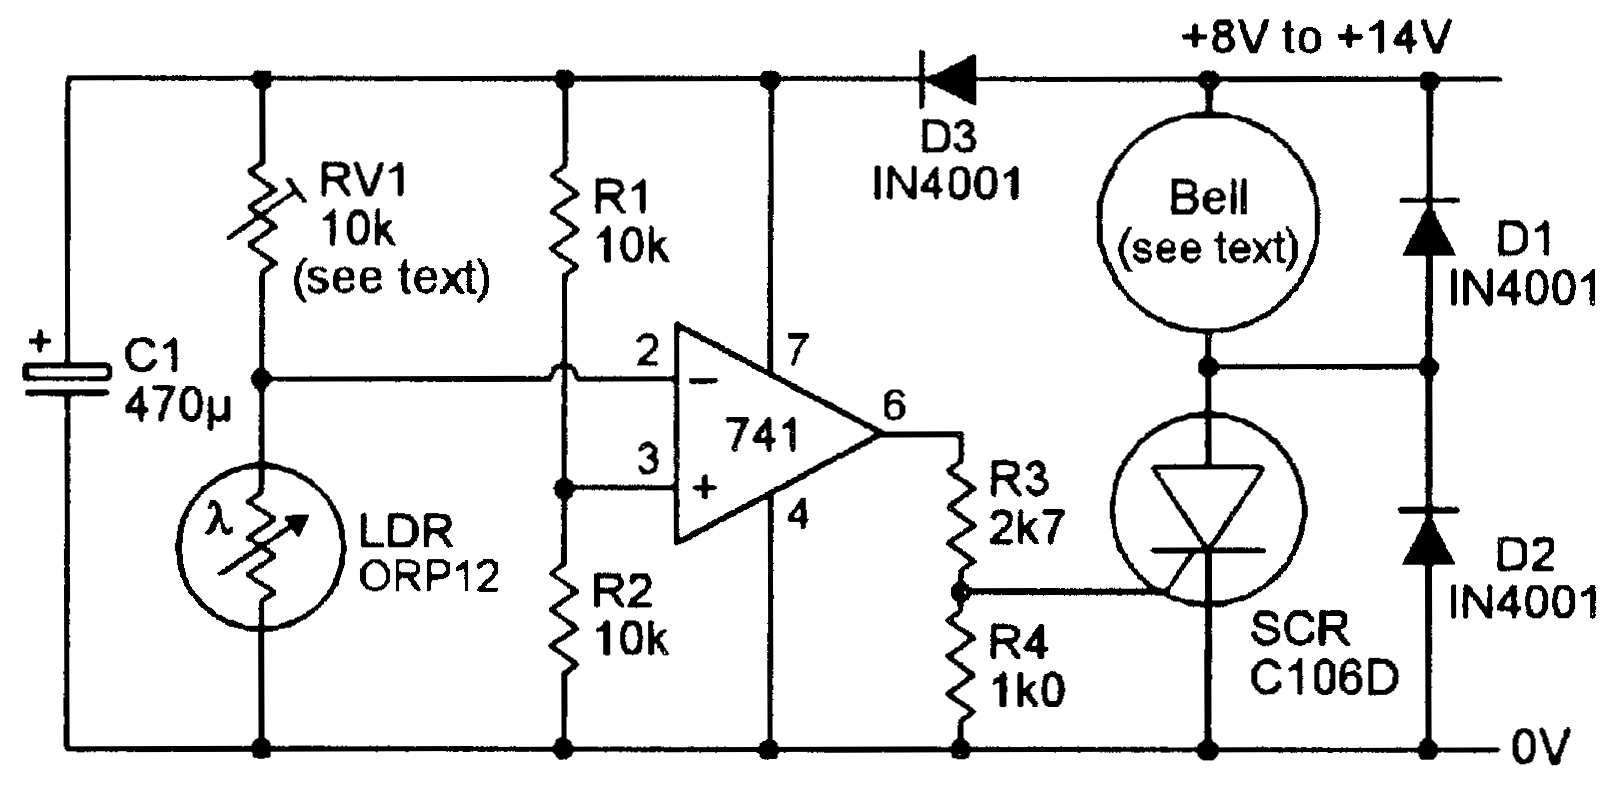 Light Sensitive Circuits Nuts Volts Magazine Ac Switch Control With Optotriaccircuit Diagram A Bell Output Ldr Alarm